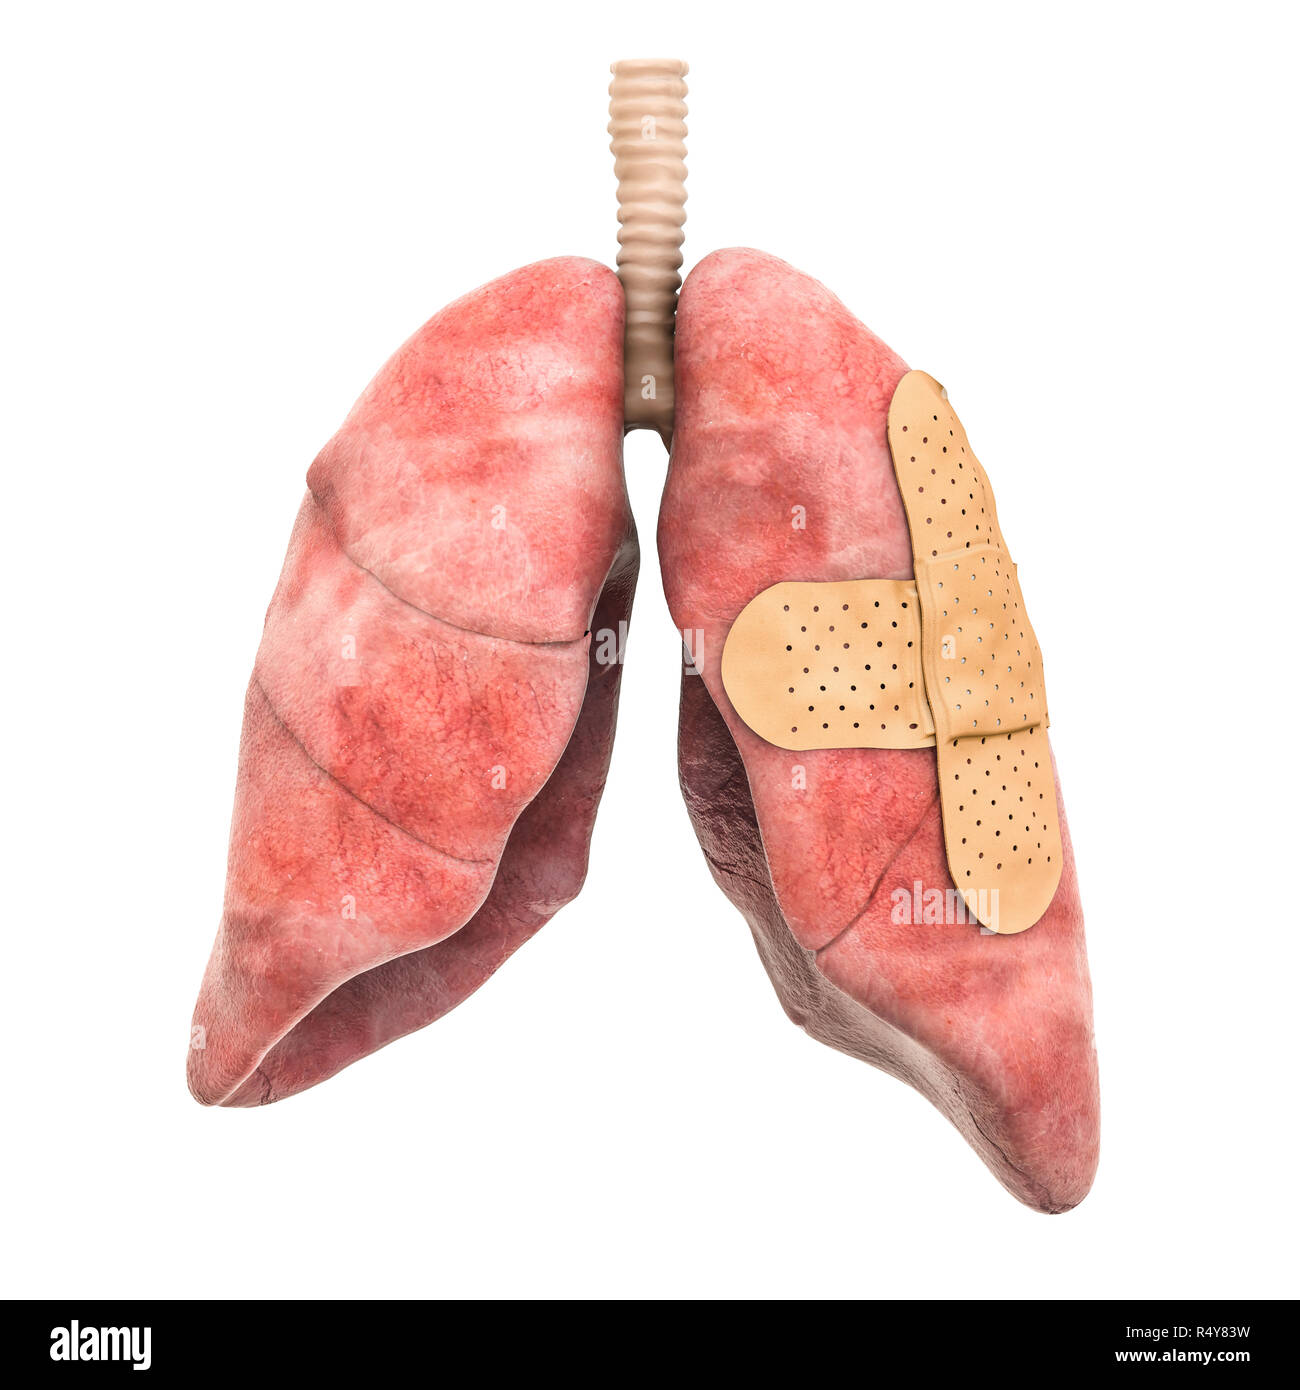 Human lungs with adhesive bandages. Treatment of lungs concept, 3D rendering isolated on white background - Stock Image